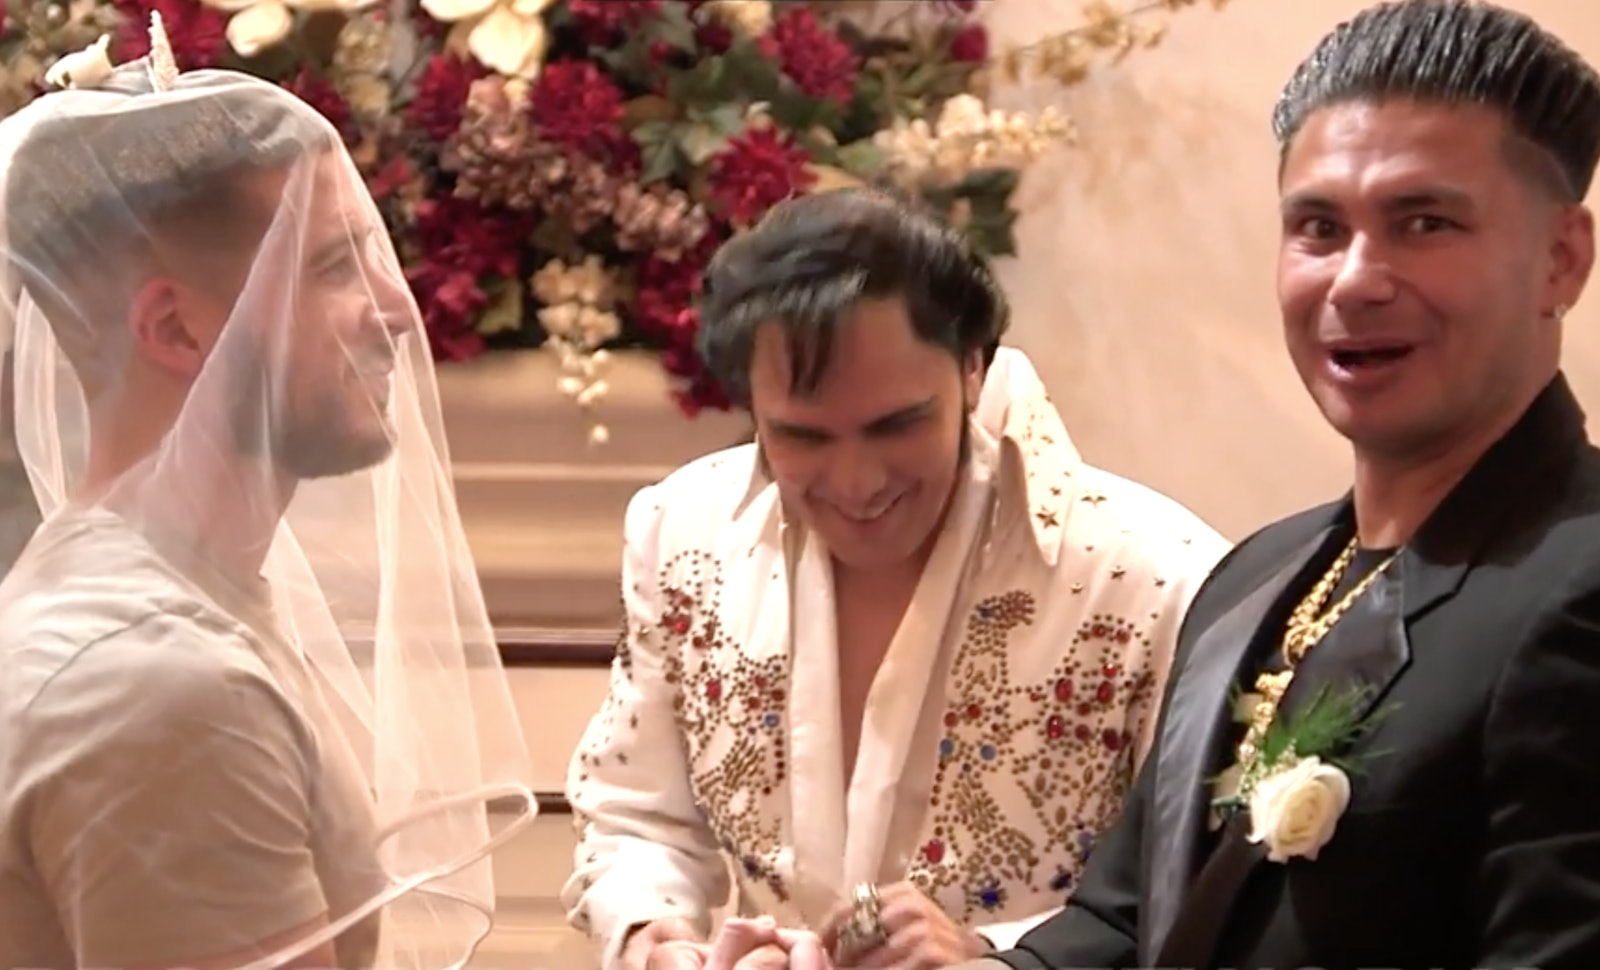 Pauly d married